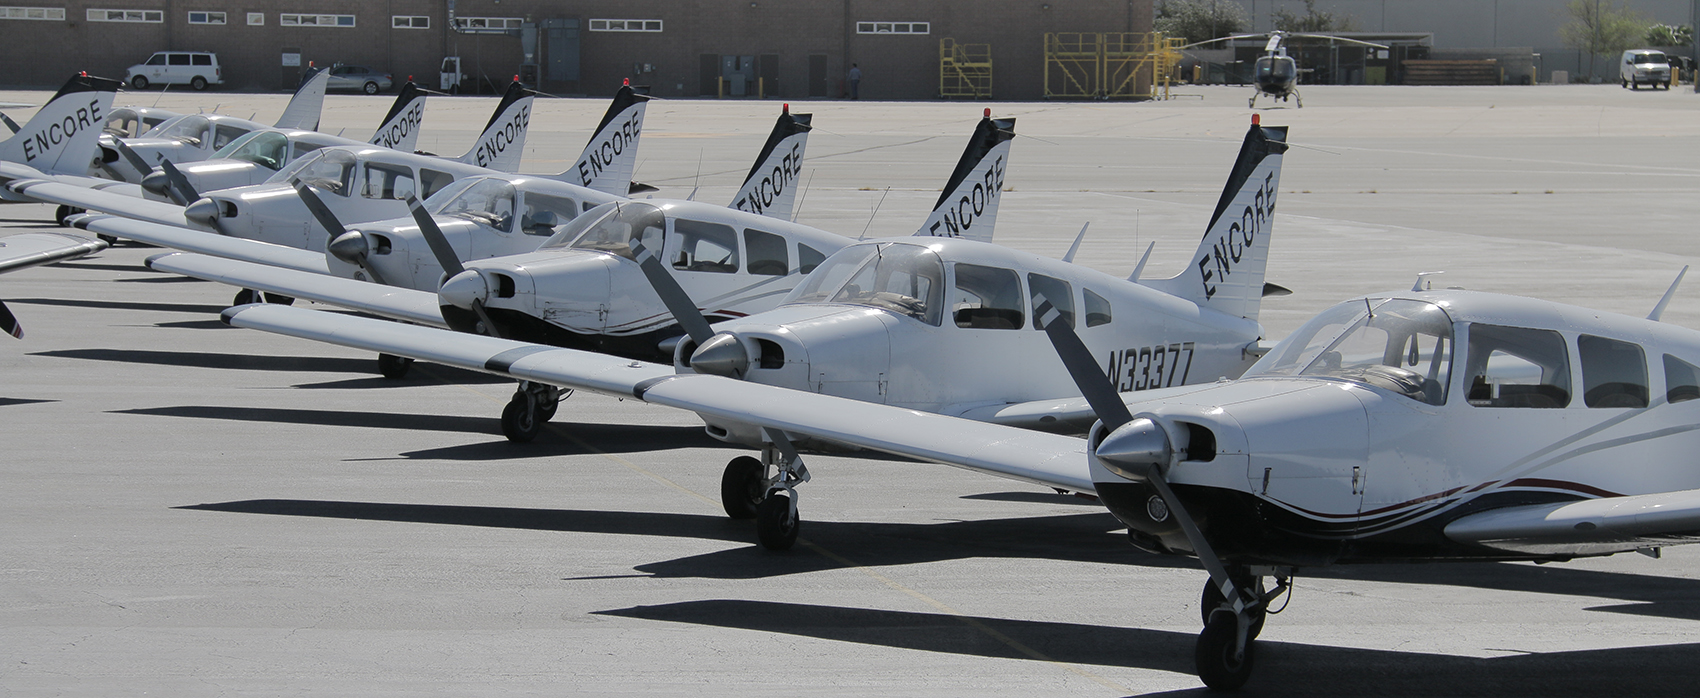 encore flight academy training aircraft